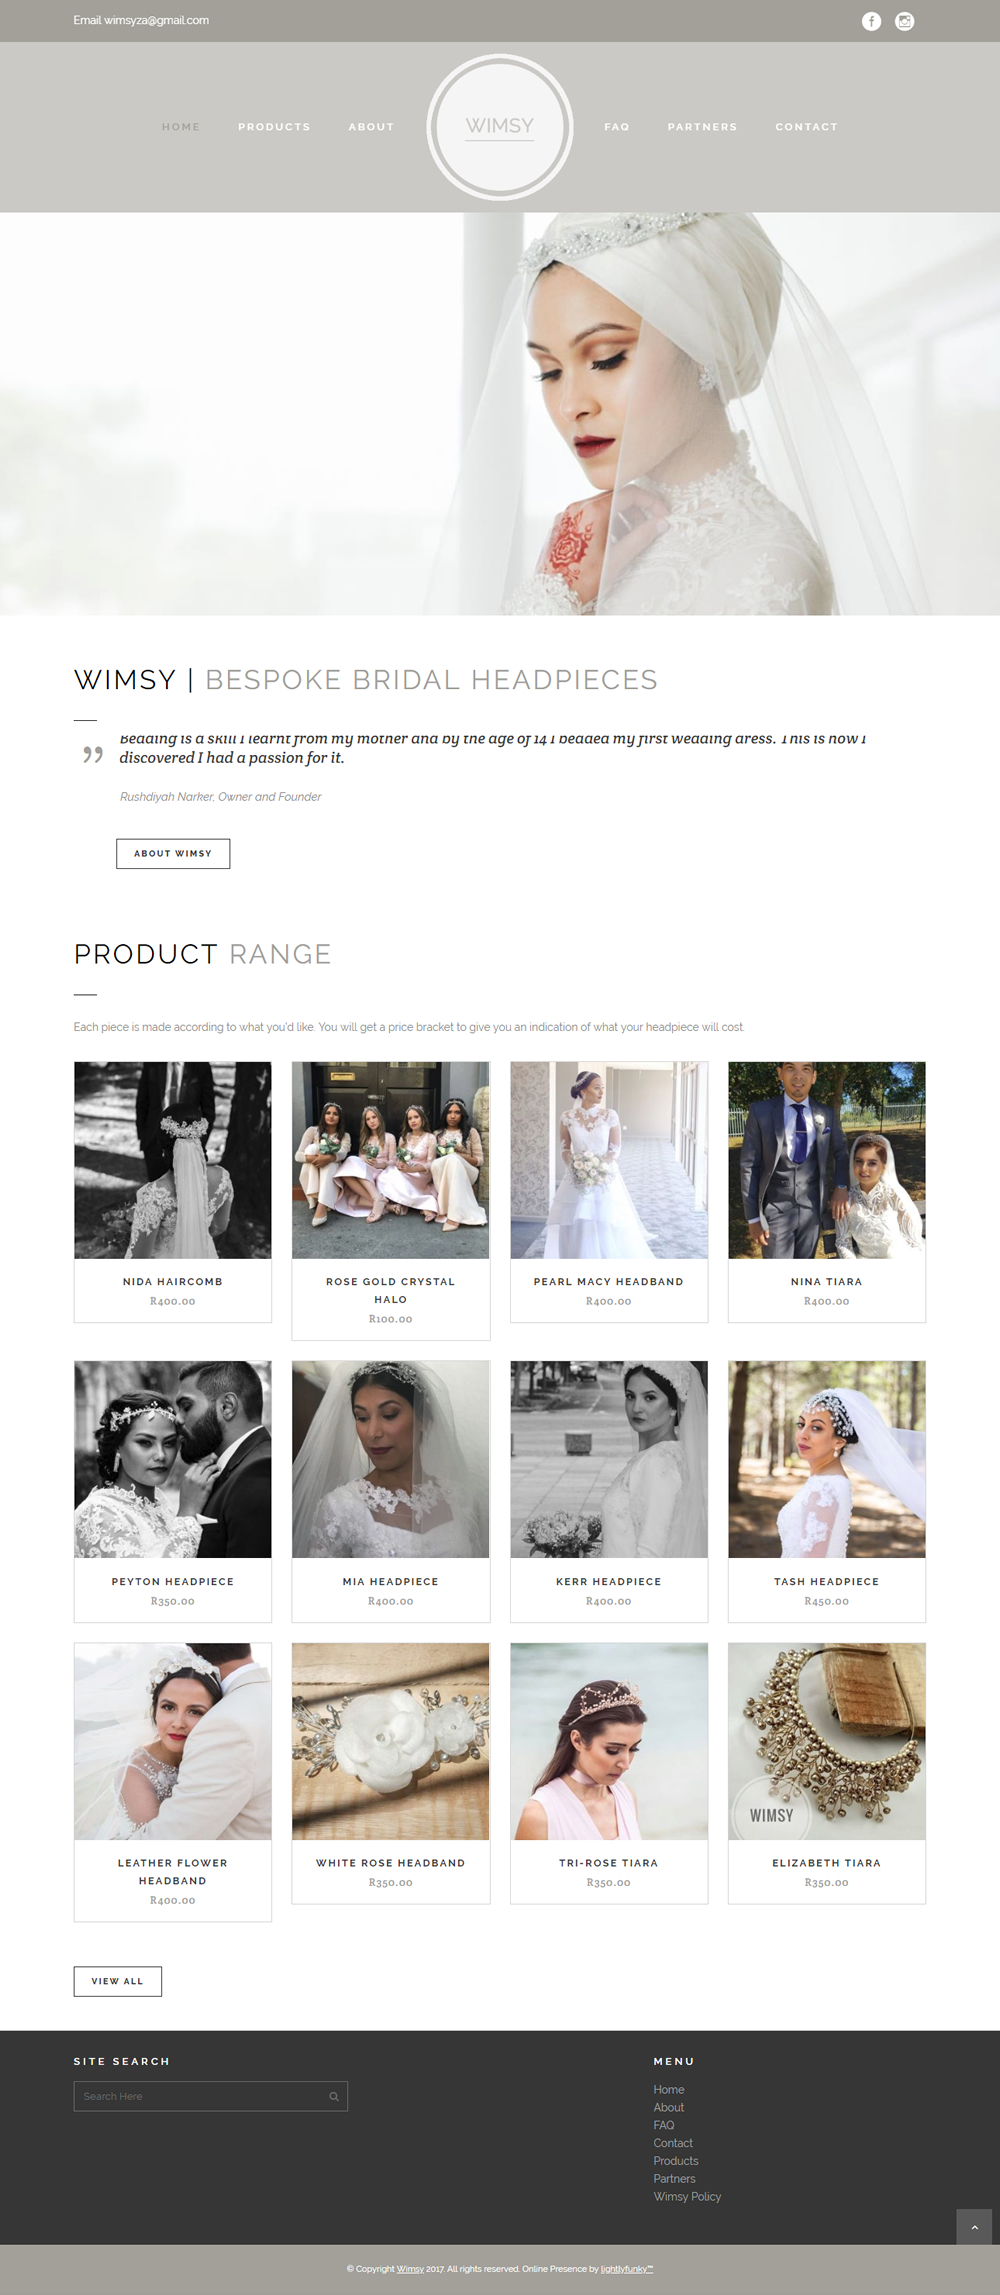 Wimsy Web Design - lightlyfunky™ - Website Portfolio